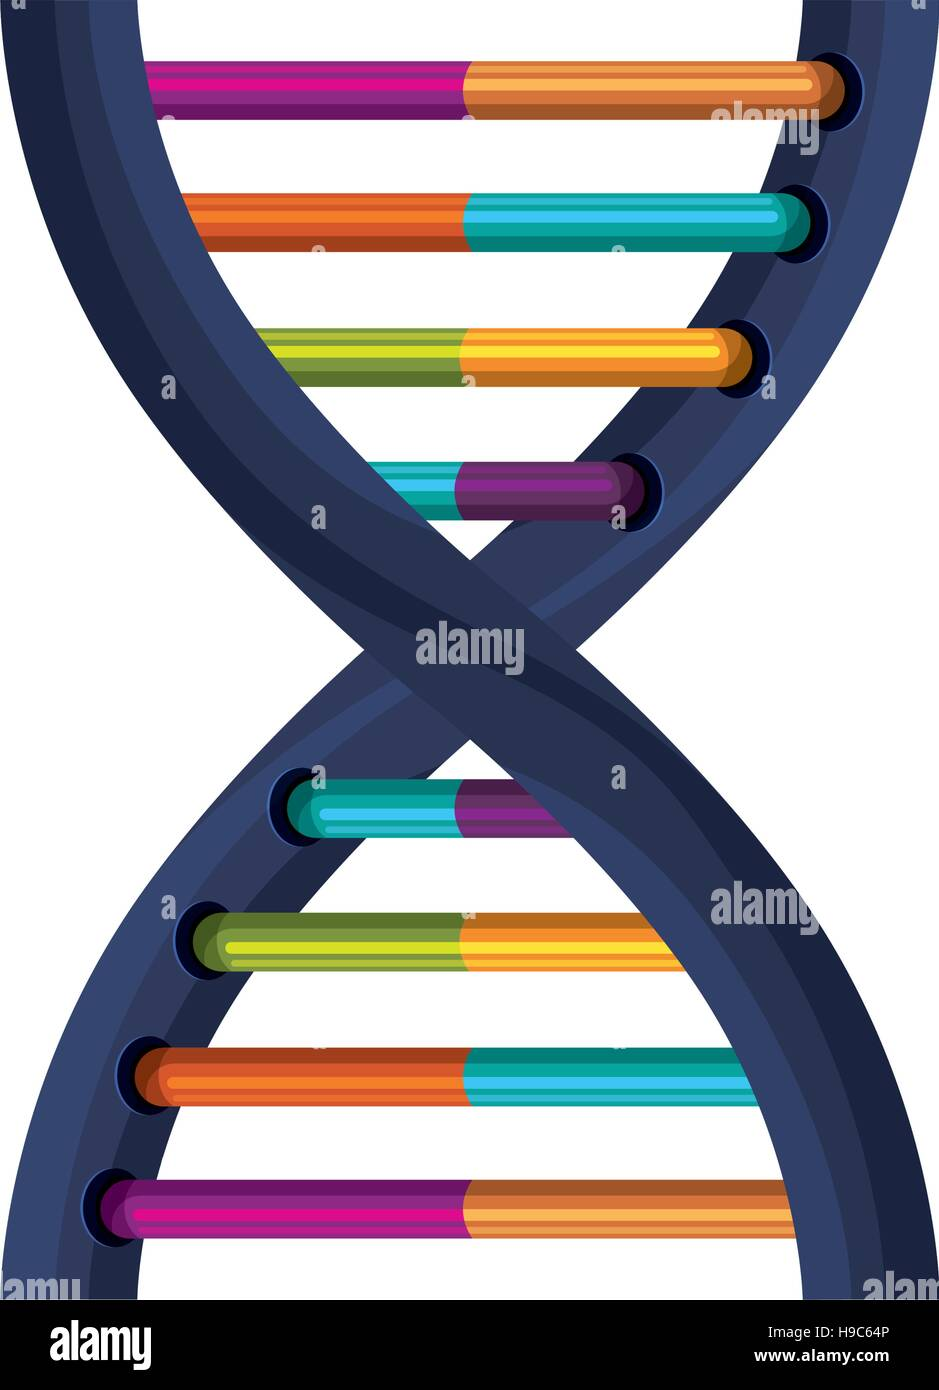 deoxyribonucleic acid with bases in color - Stock Image